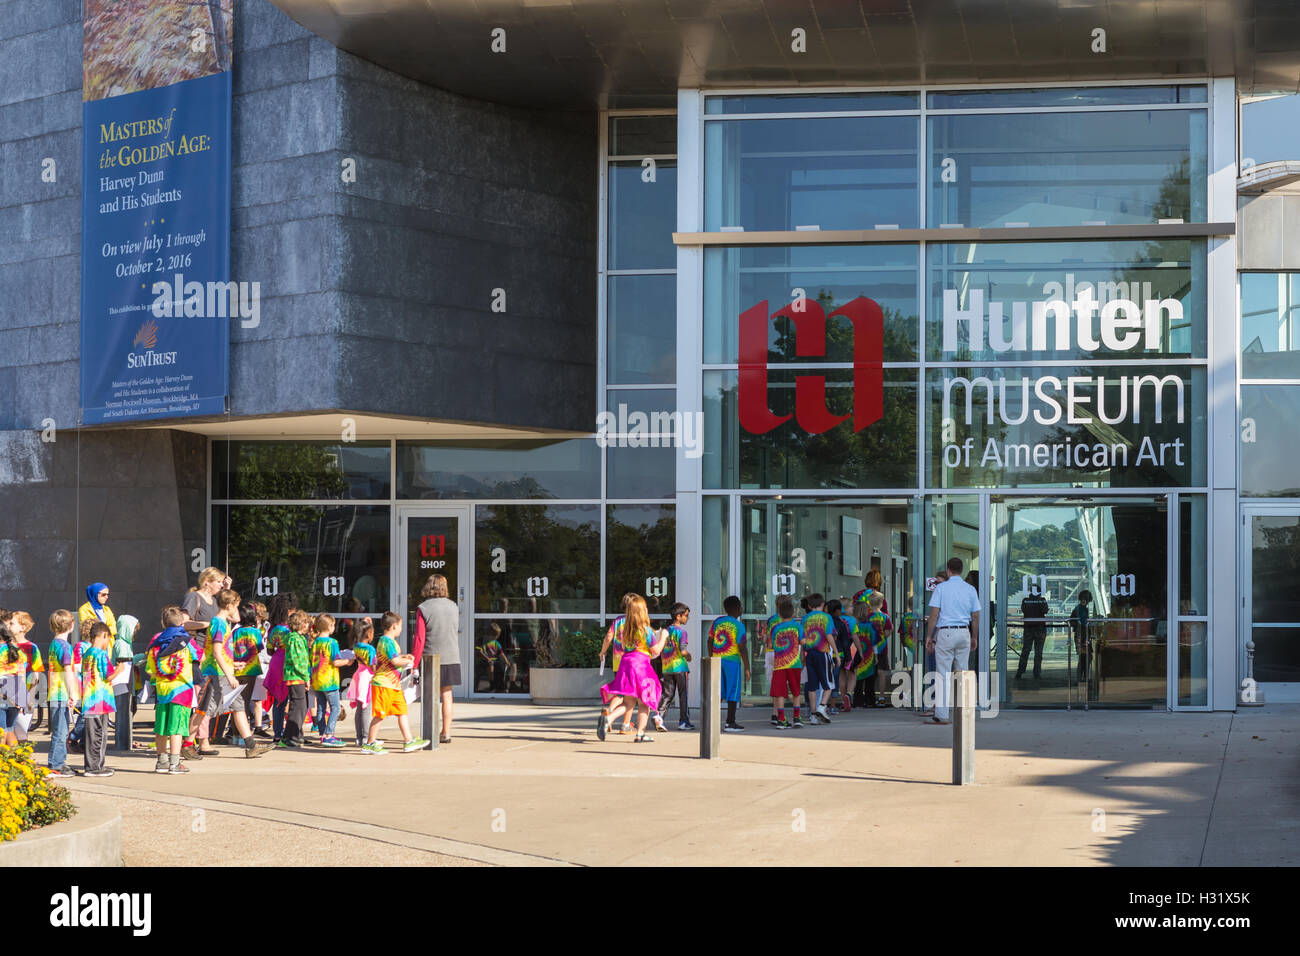 A group of elementary school students on a school field trip enters the Hunter Museum of American Art in Chattanooga, Stock Photo